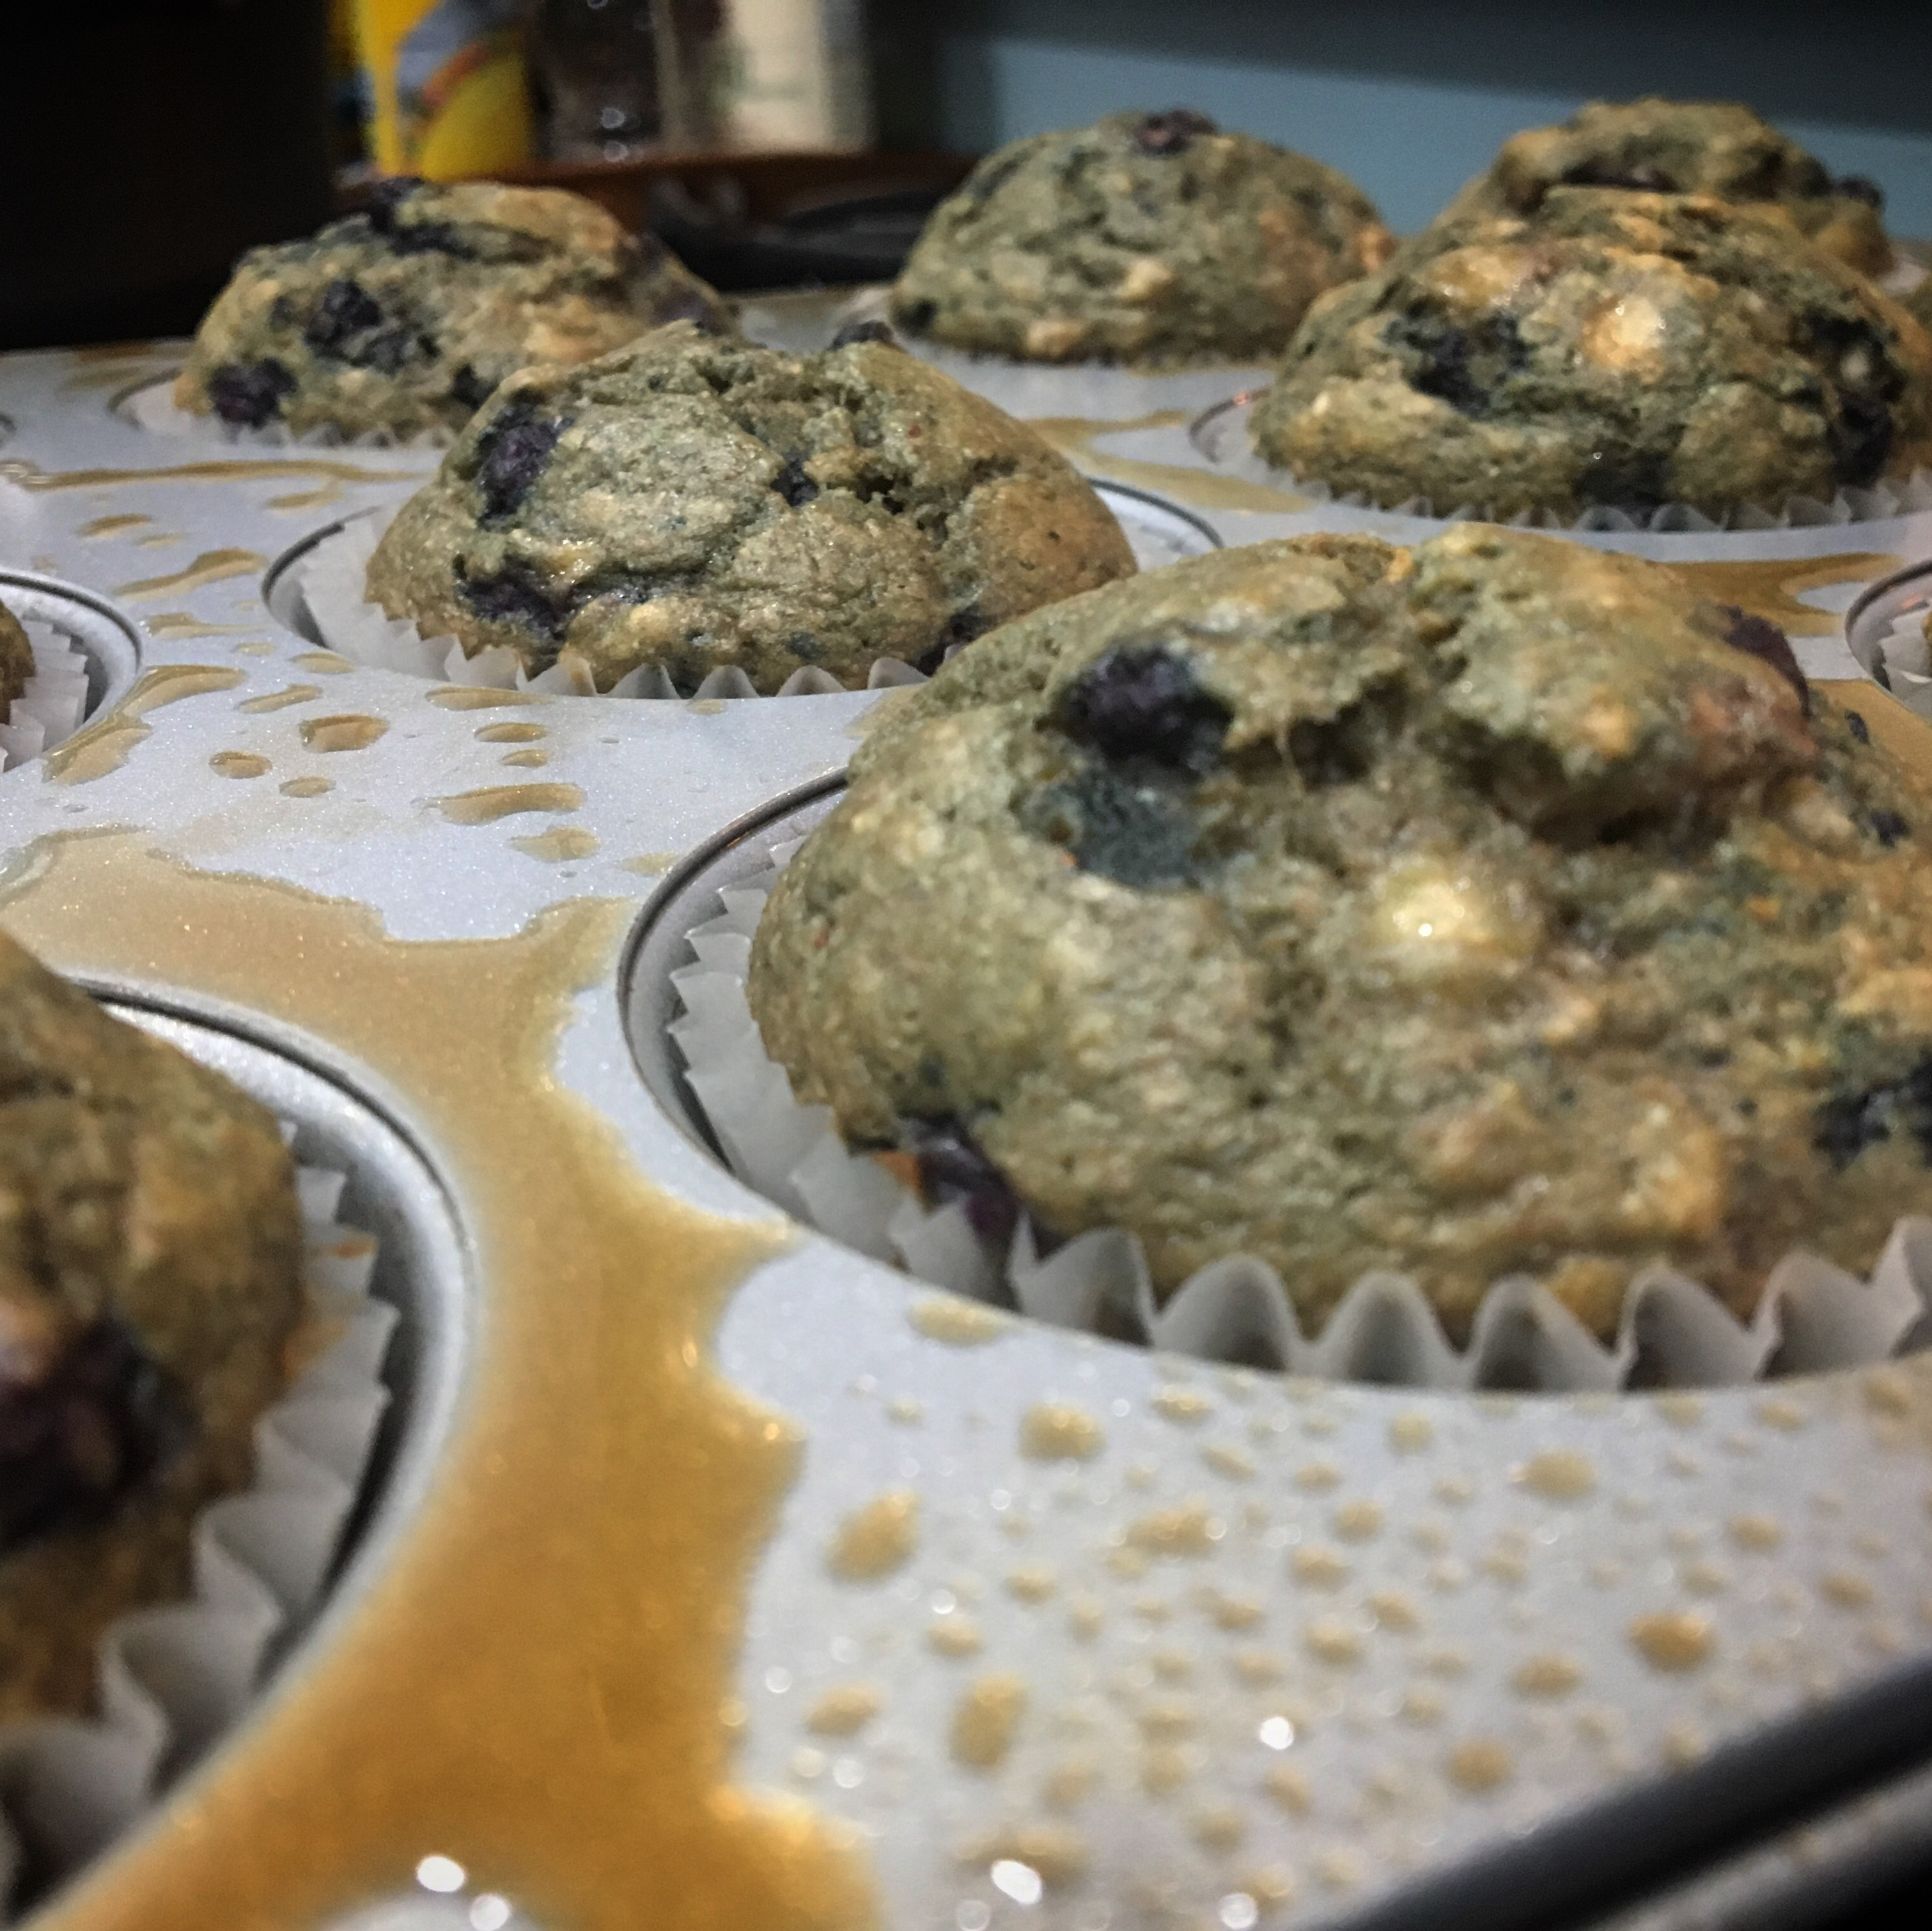 Delicious and Nutritious Whole Wheat Banana and Blueberry Muffins